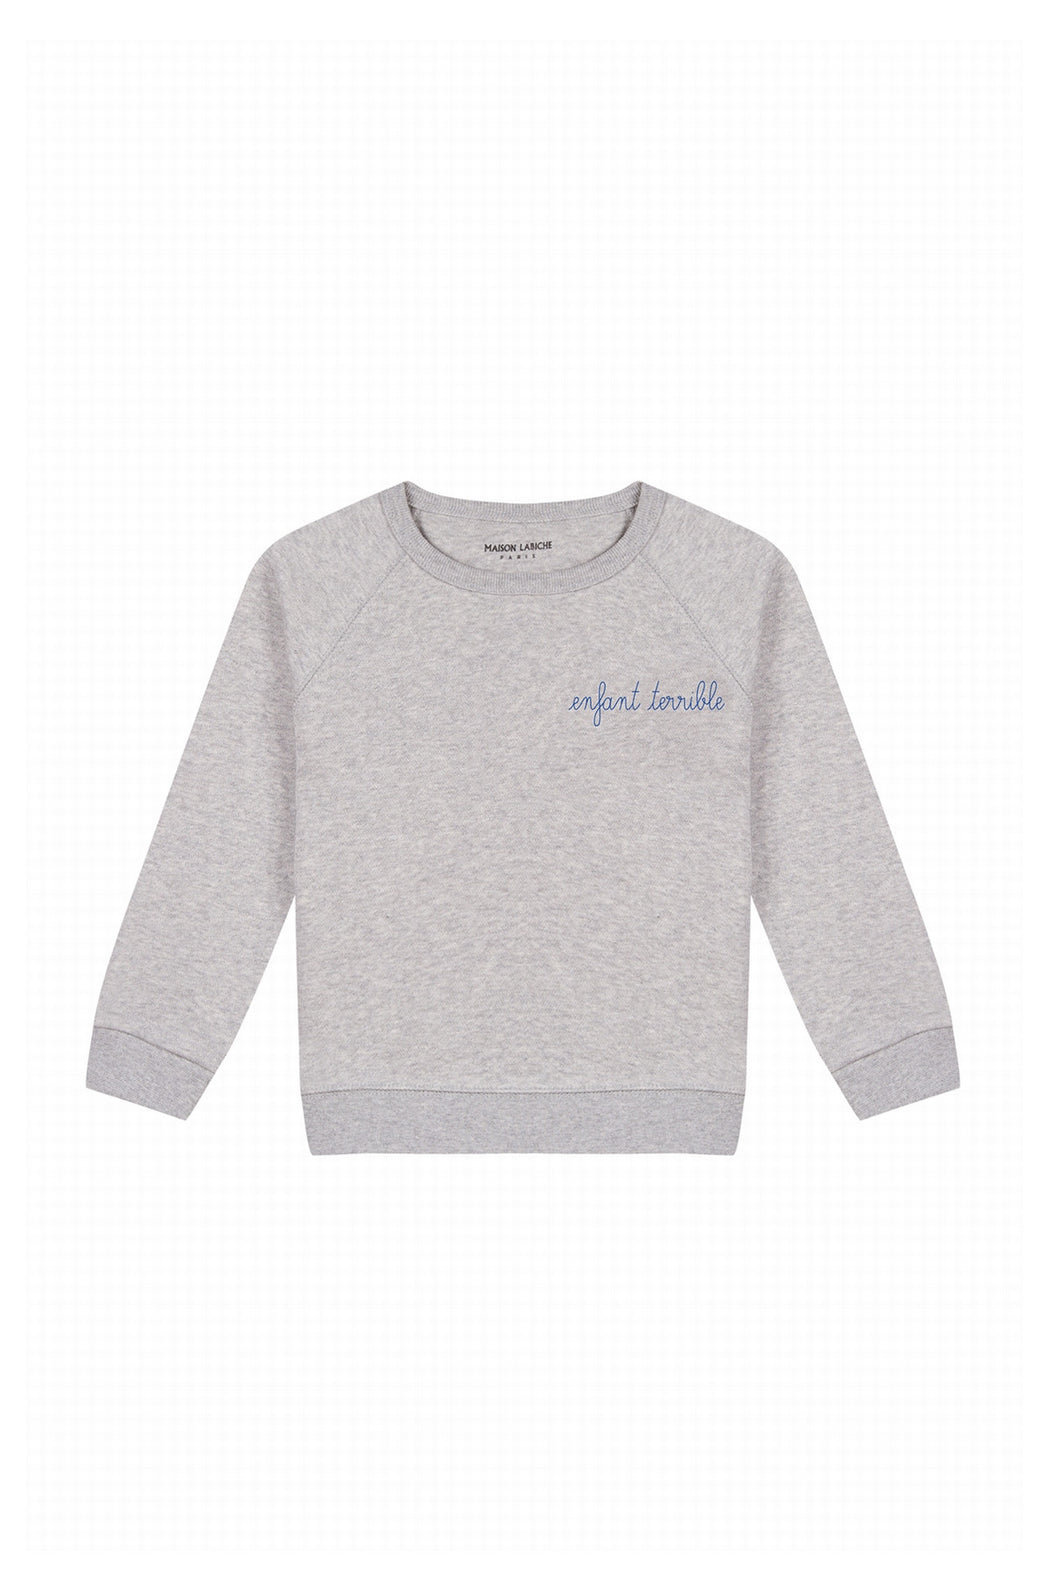 Maison Labiche - Sweatshirt Enfant Terrible